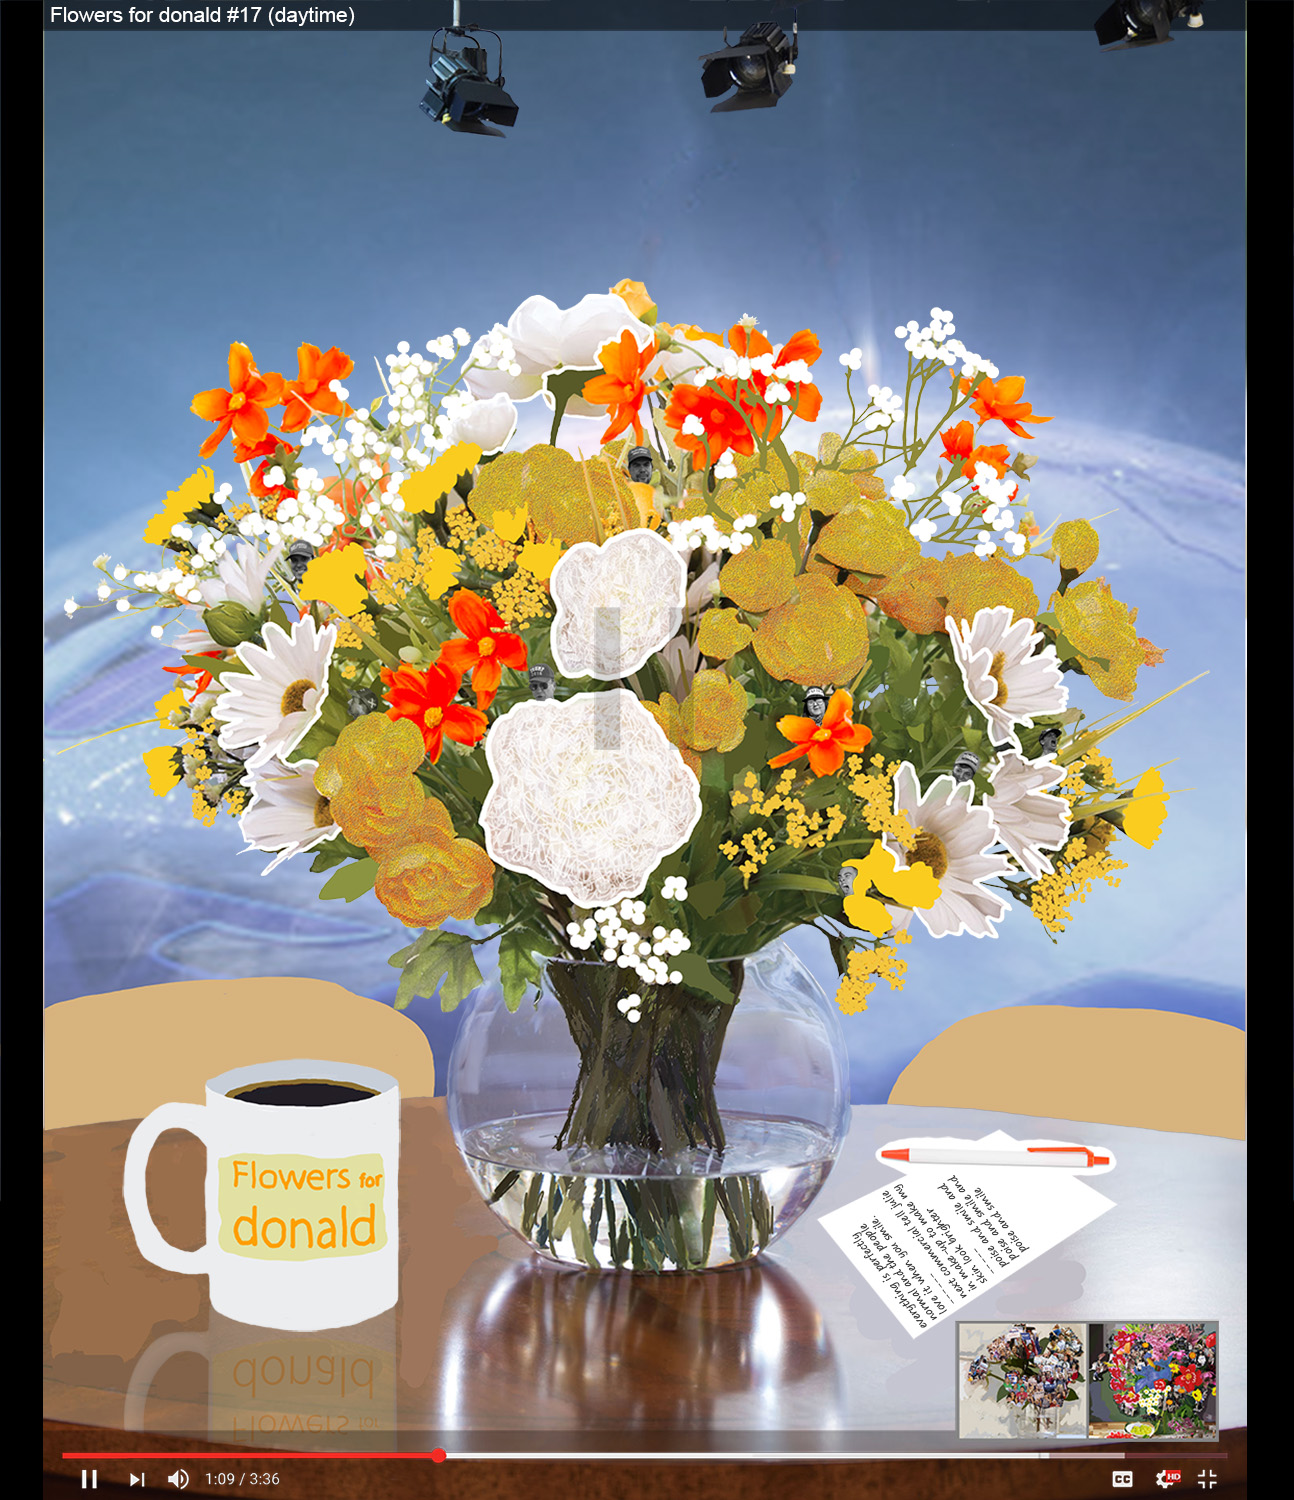 Flowers for donald #20(daytime)